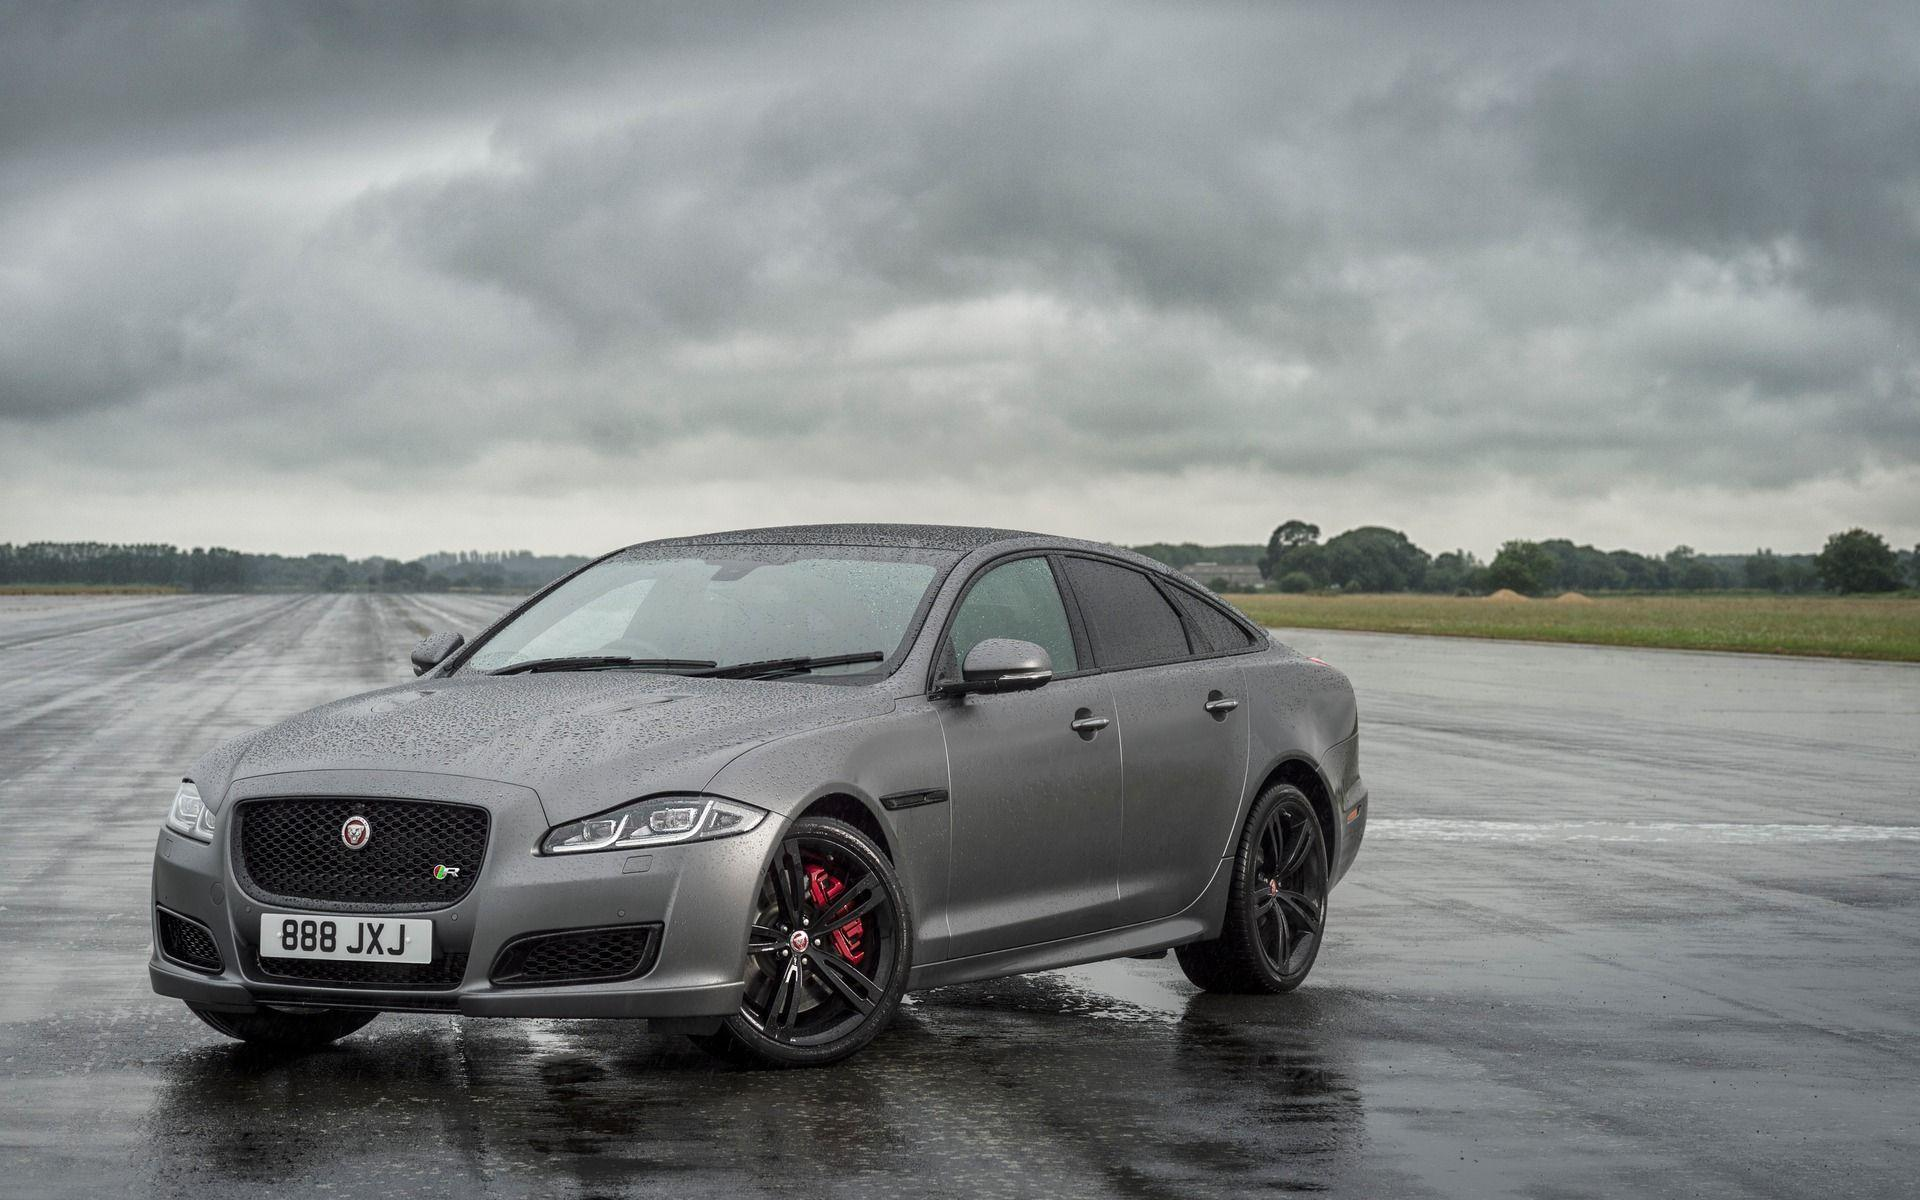 2018 Jaguar XJR575 Added to the Line-up - The Car Guide